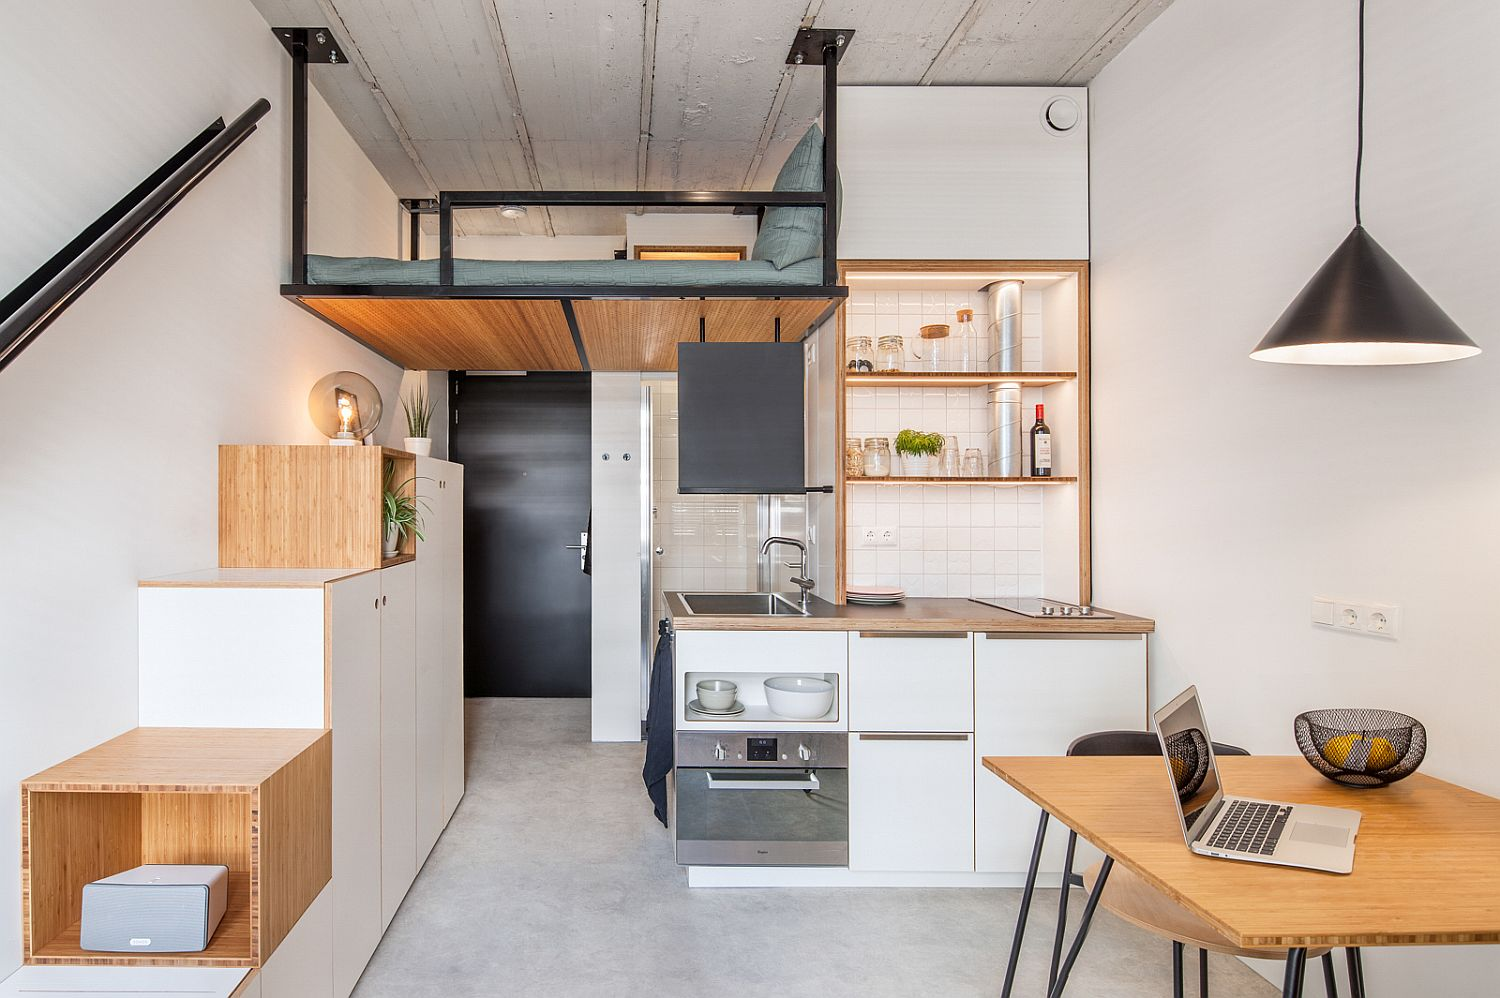 How To Maximize Space In A Small Apartment Kitchen